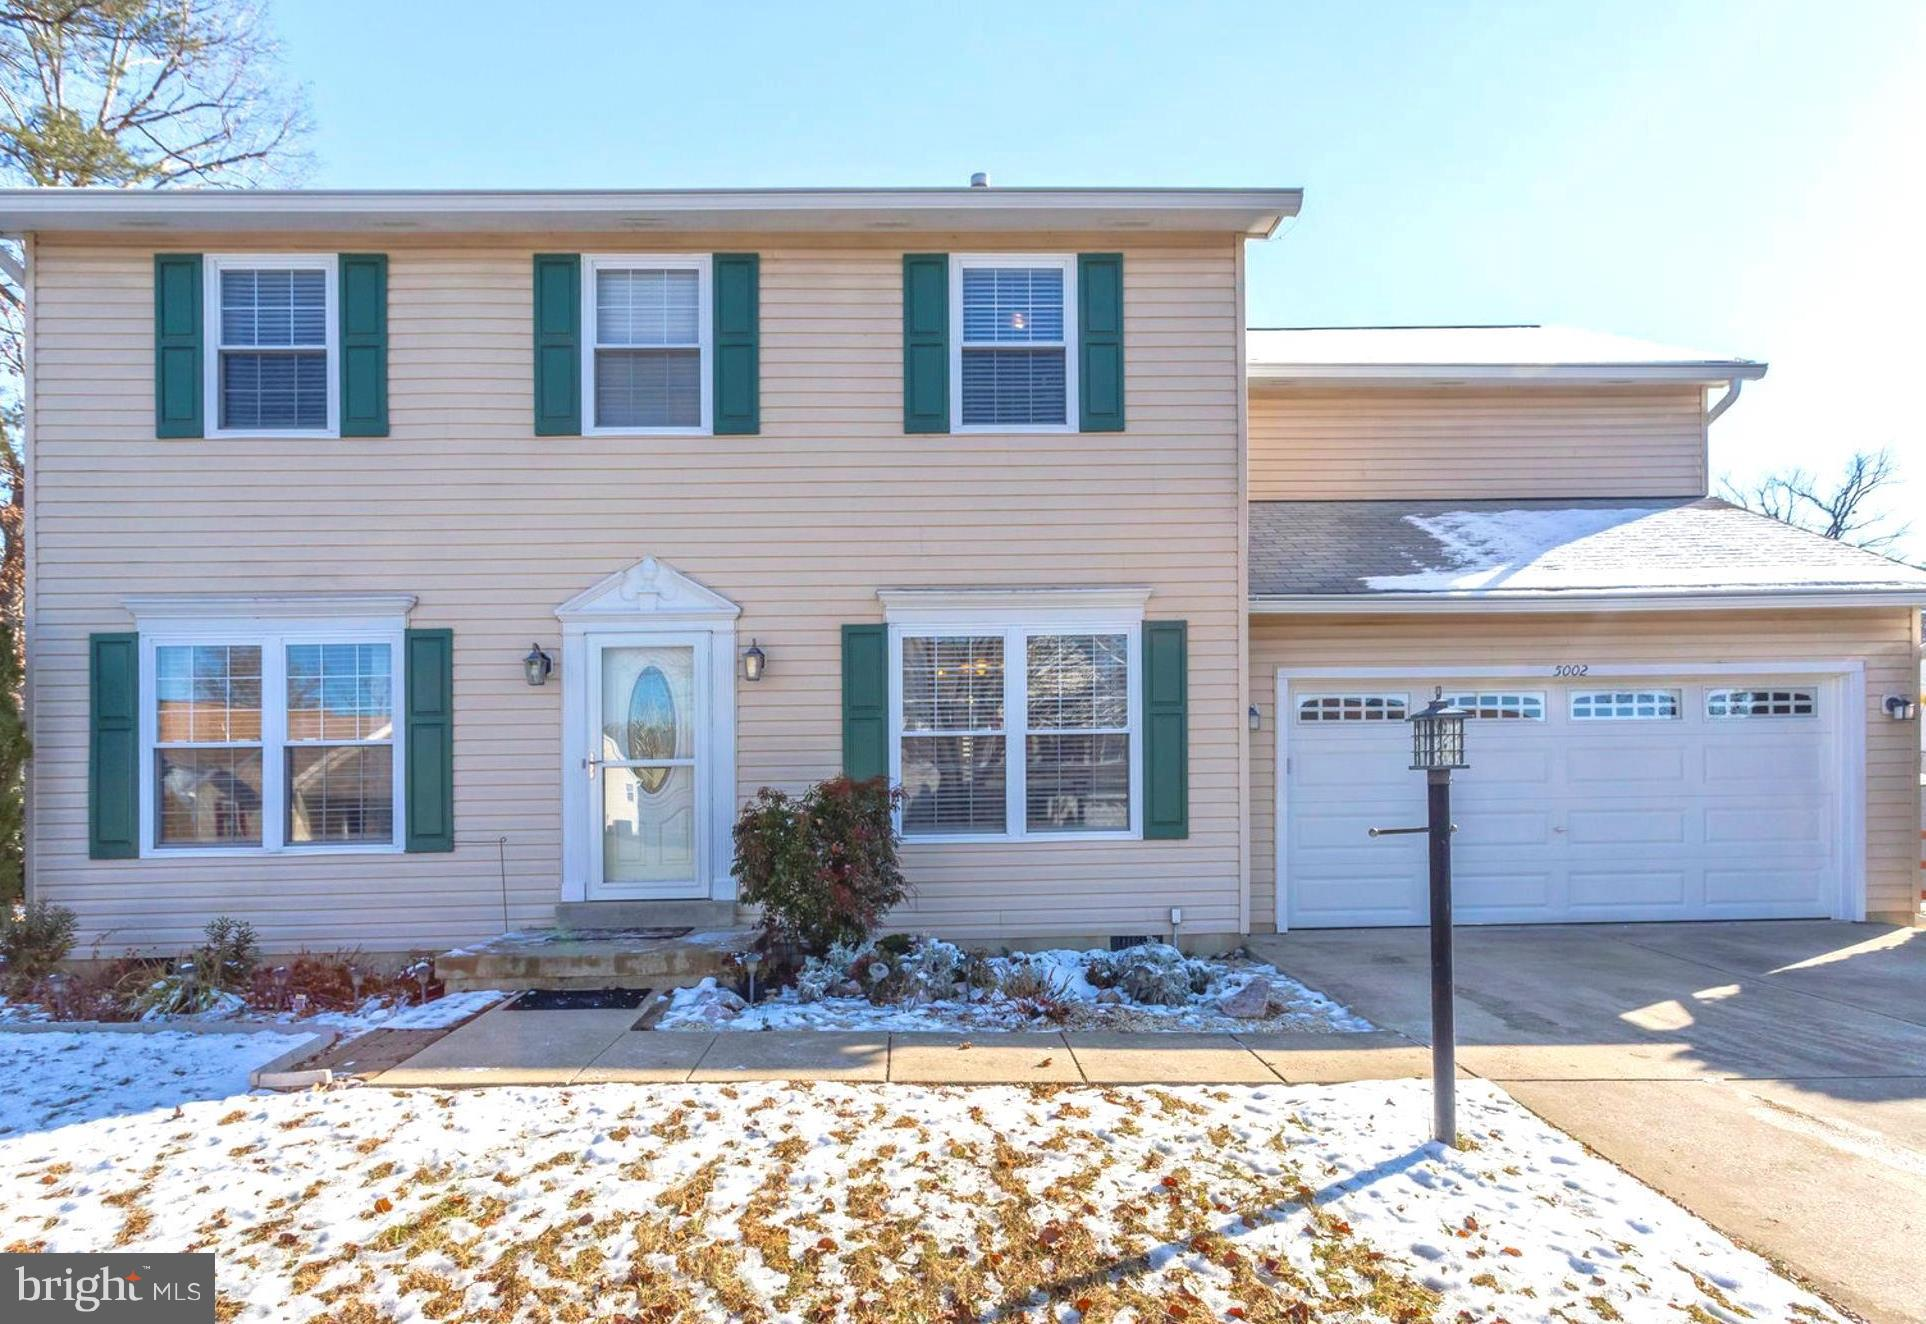 Beautifully maintained 4-5 BR, 2.5 BA with 2 Car Garage in sought after Dorchester Neighborhood! Ope